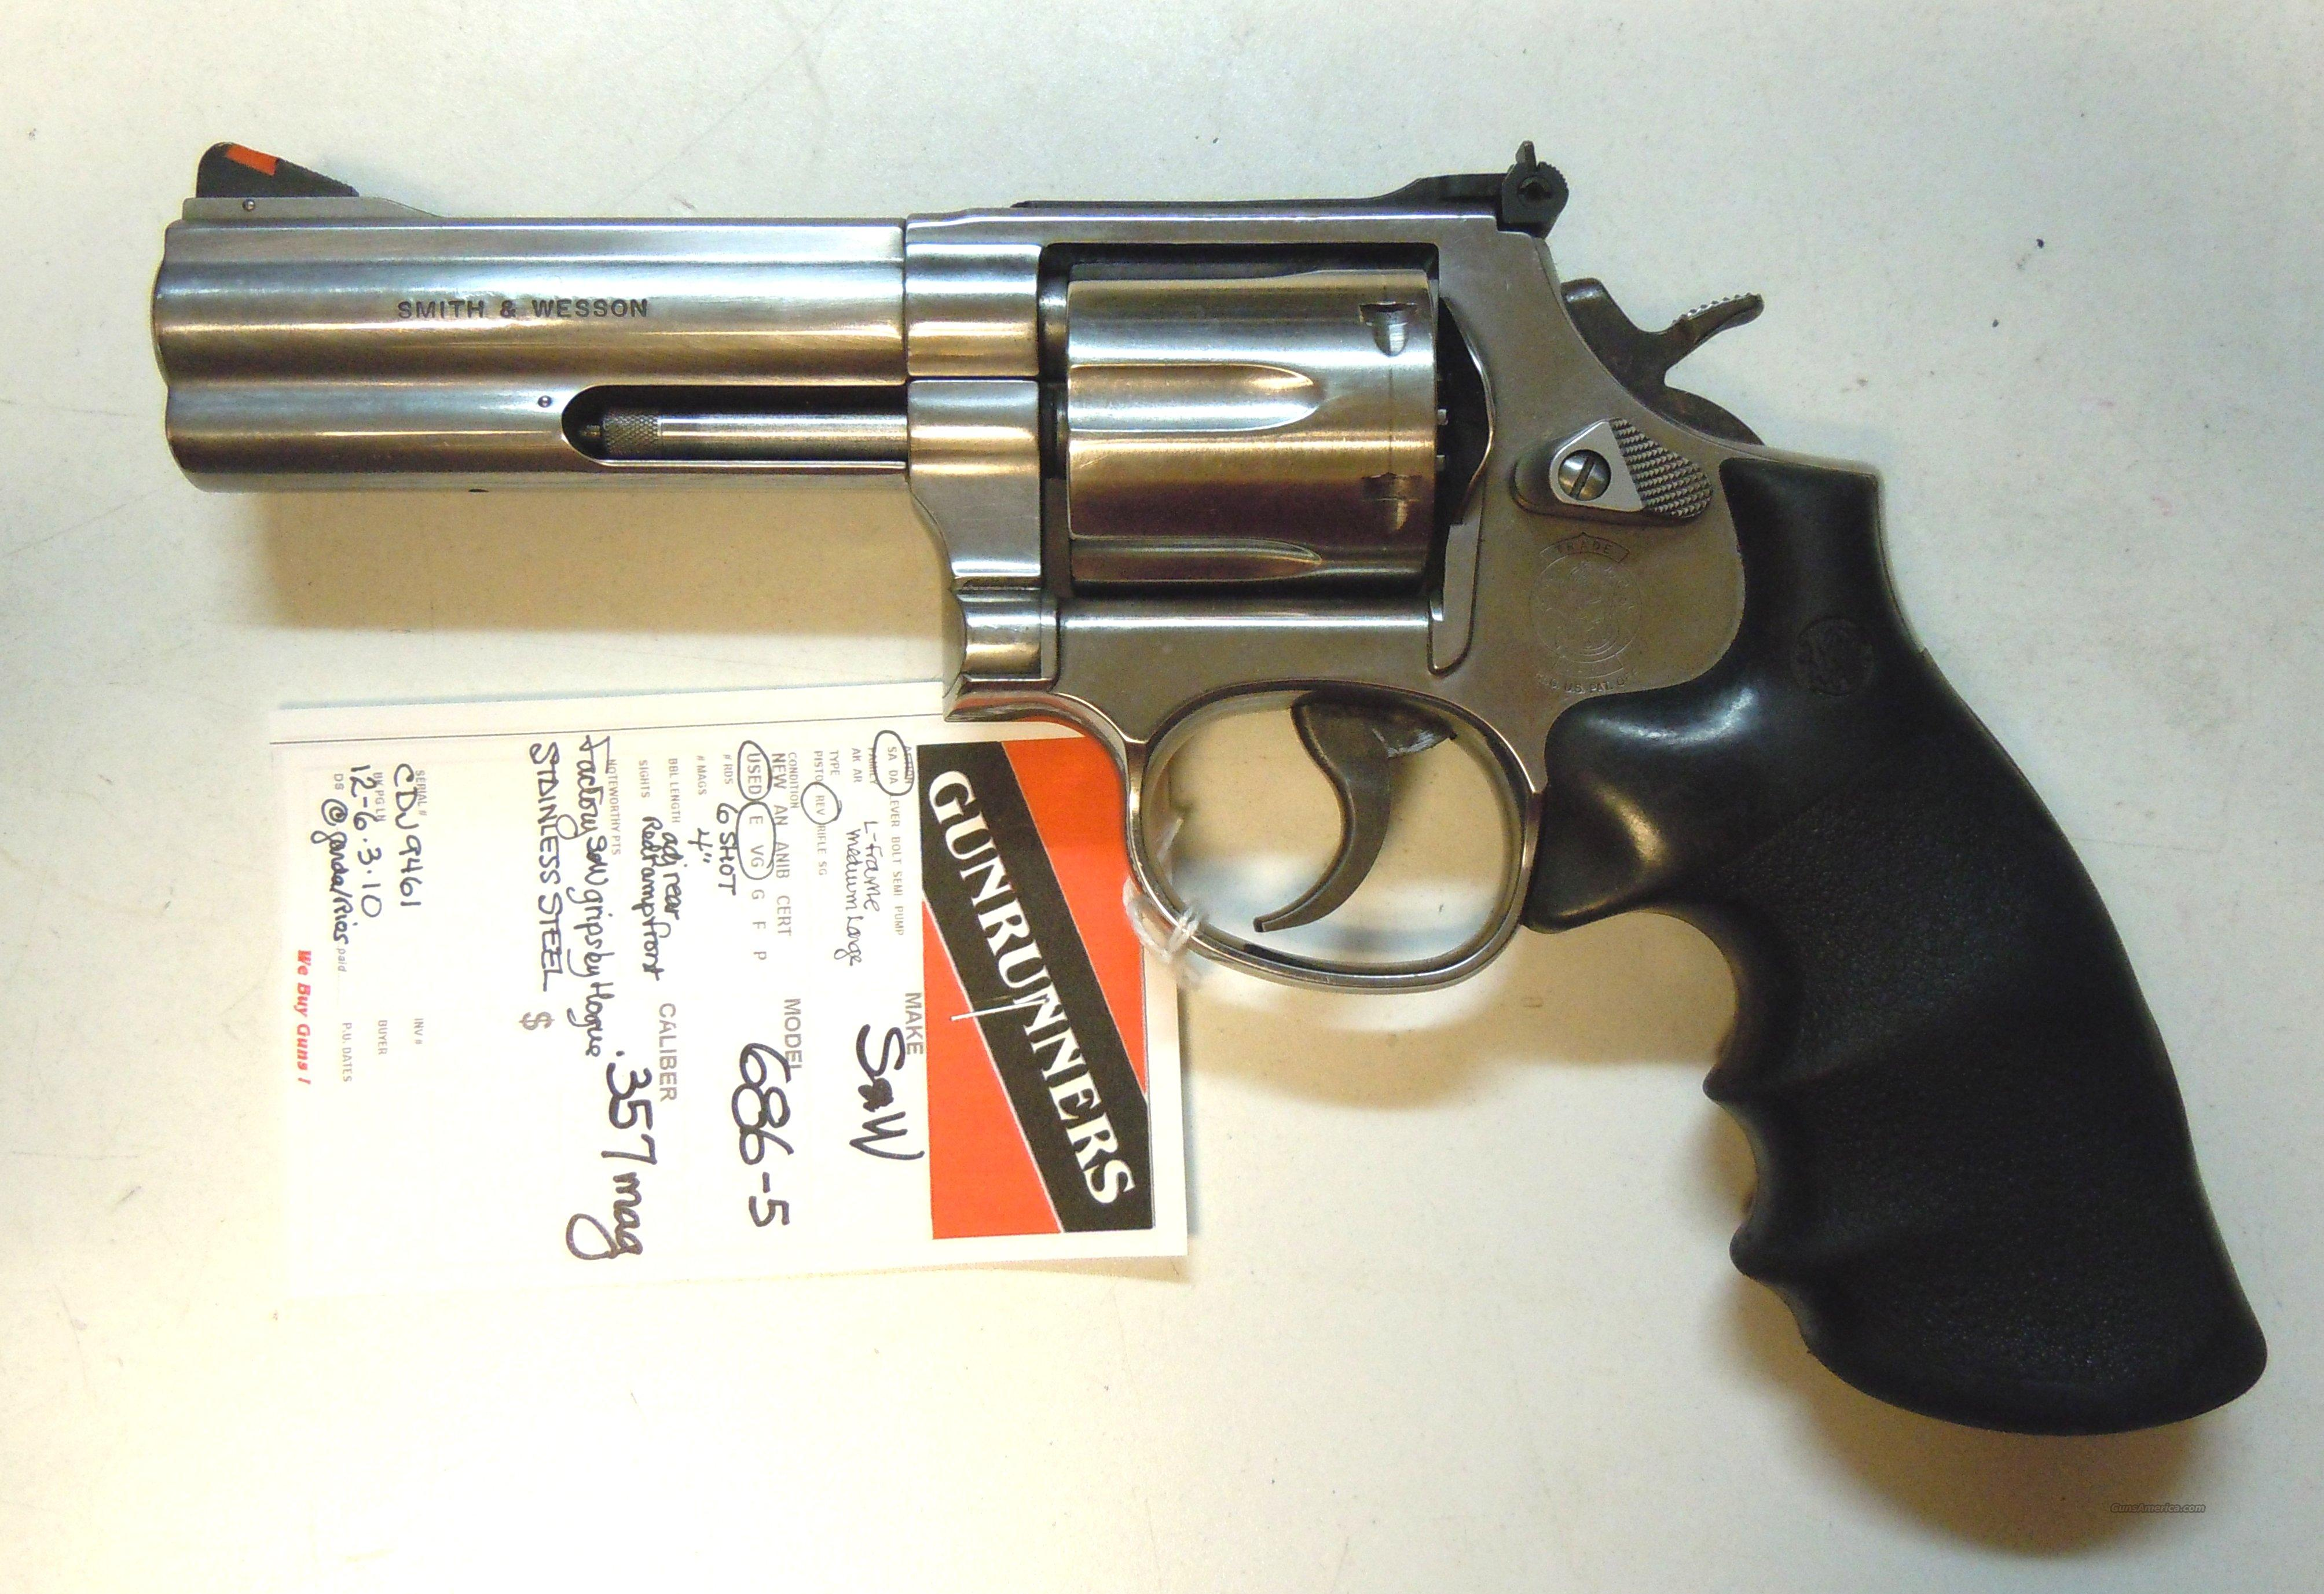 "Smith & Wesson 686-5 4"" .357 Magnum  Guns > Pistols > Smith & Wesson Revolvers > Full Frame Revolver"